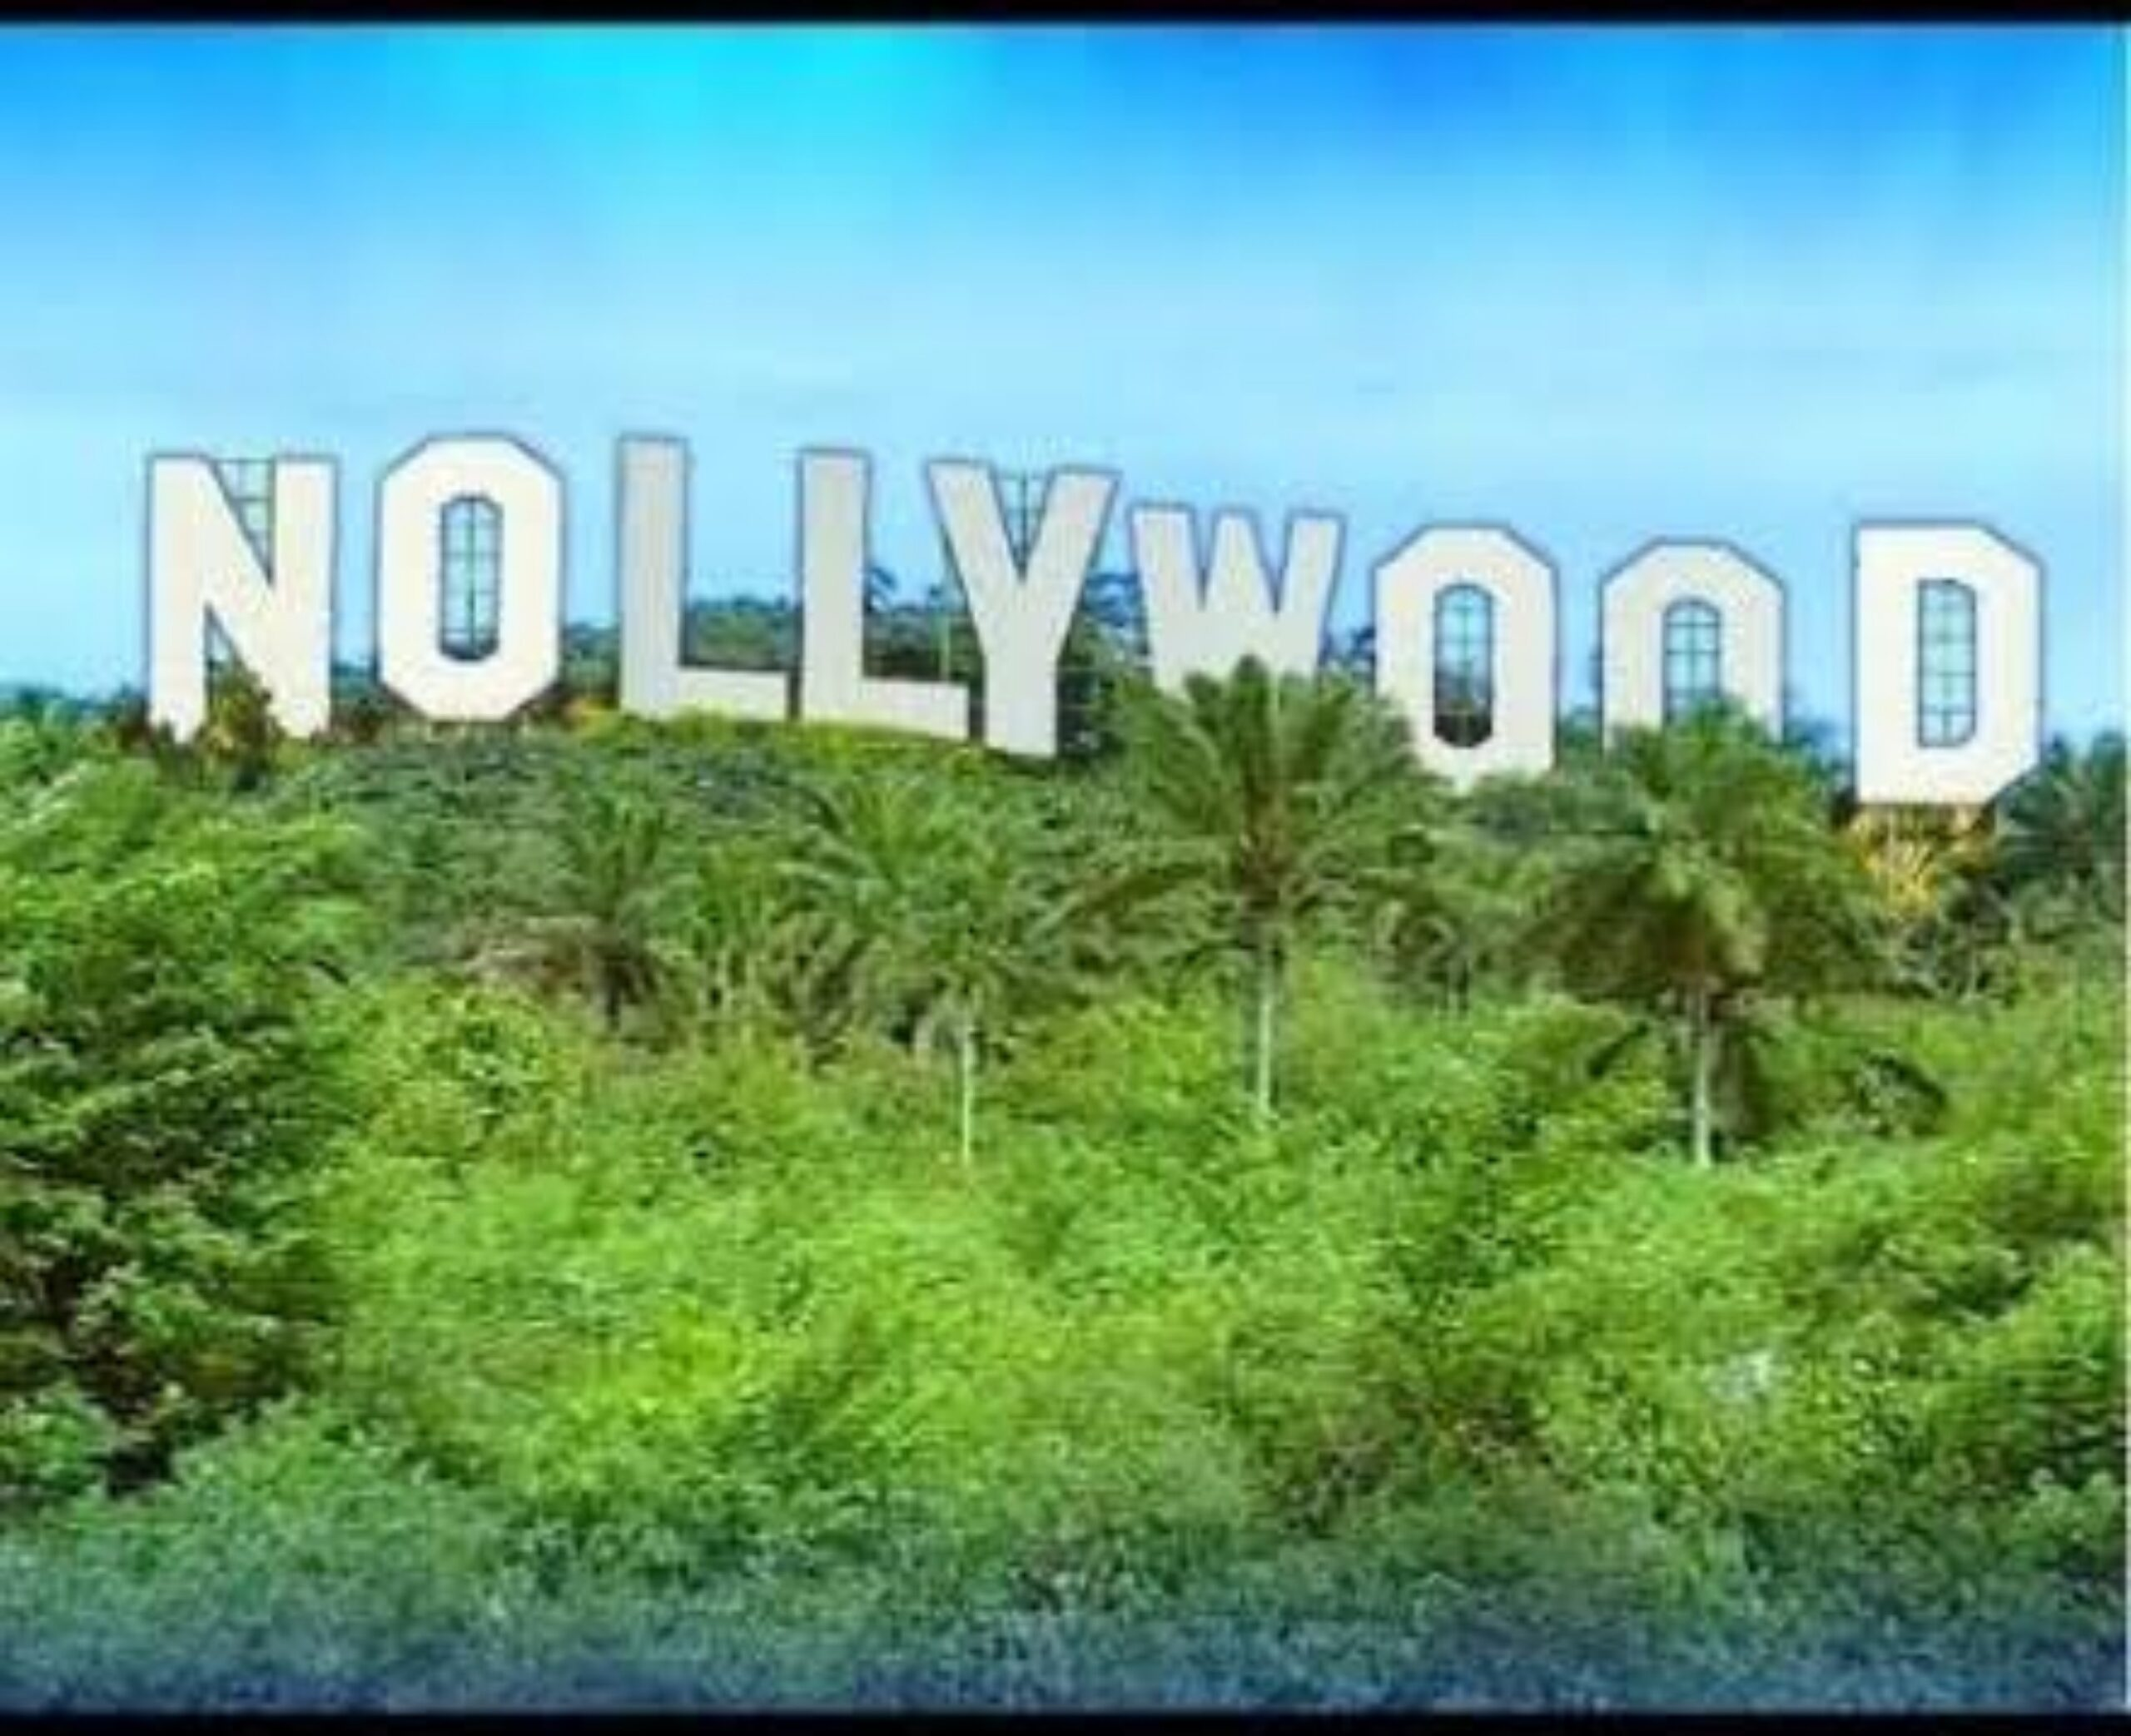 A Nollywood Pervaded With Immodesty: A Blunting Axe For Positive Societal Change In Nigeria